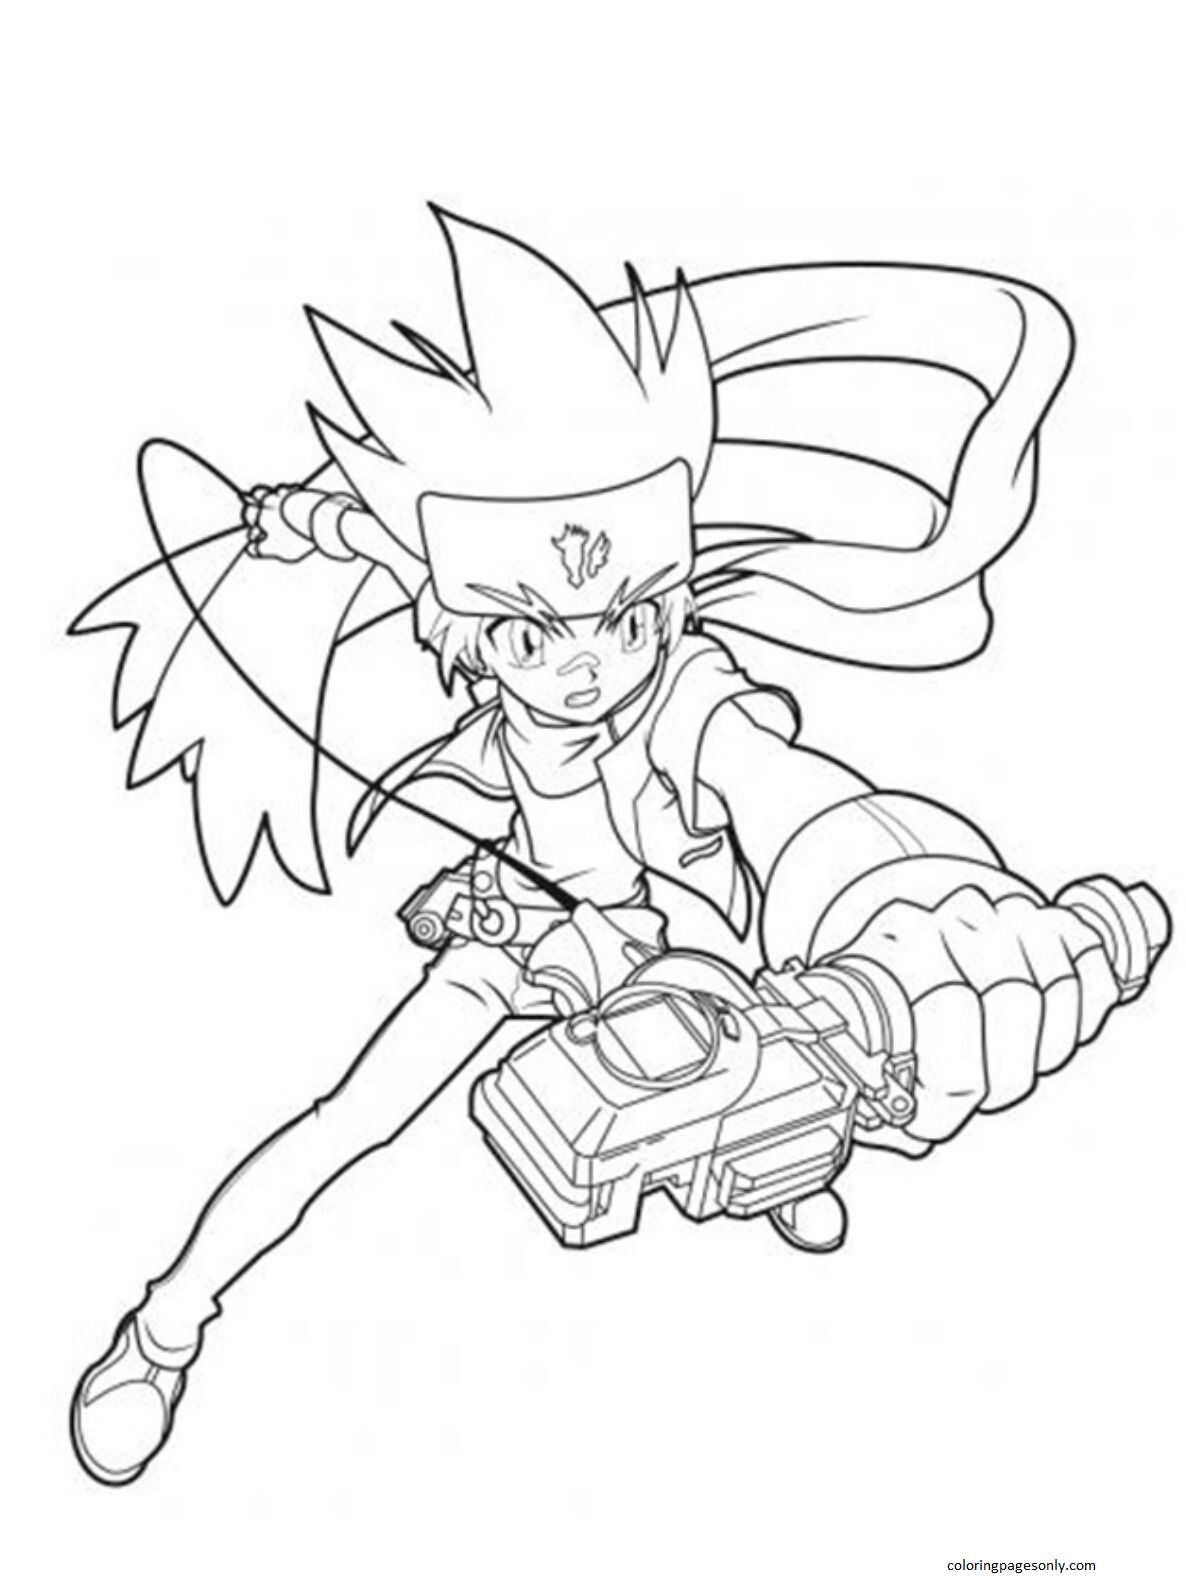 Beyblade Burst 16 Coloring Page